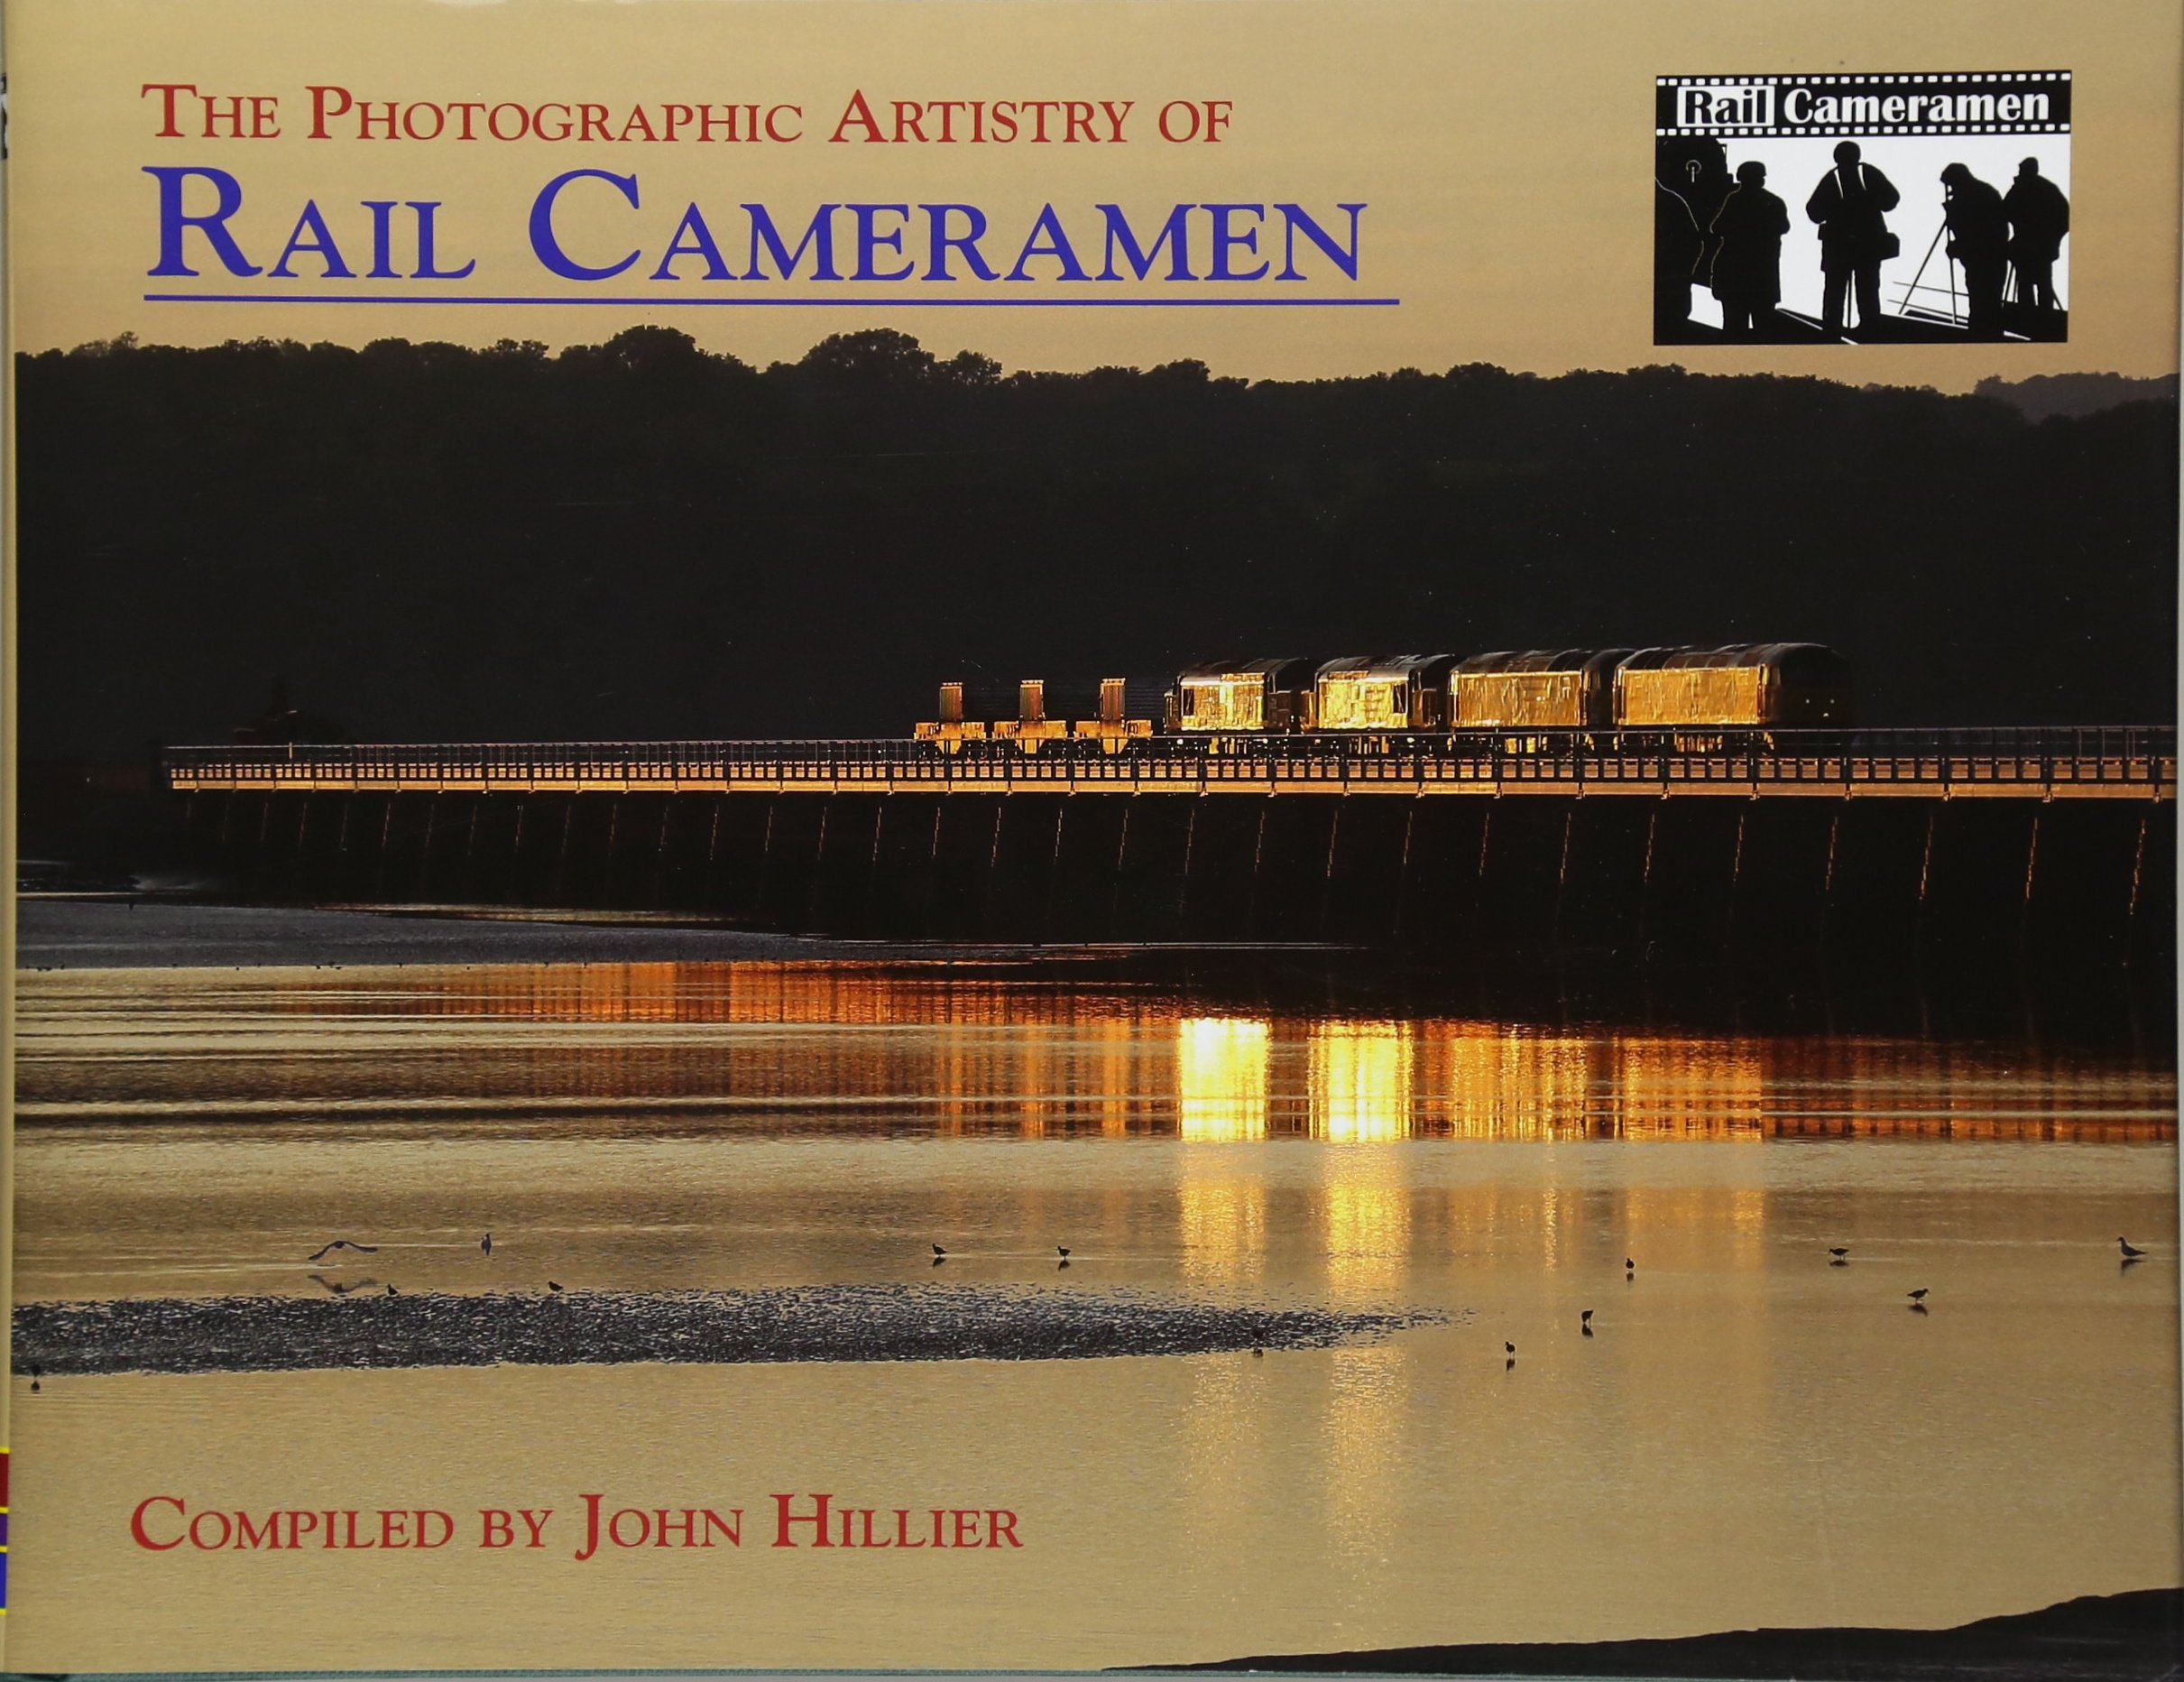 Download Rail The Photographic Artistry of Rail Cameramen 2018: A Tribute to the work of members of the Rail Camera Club pdf